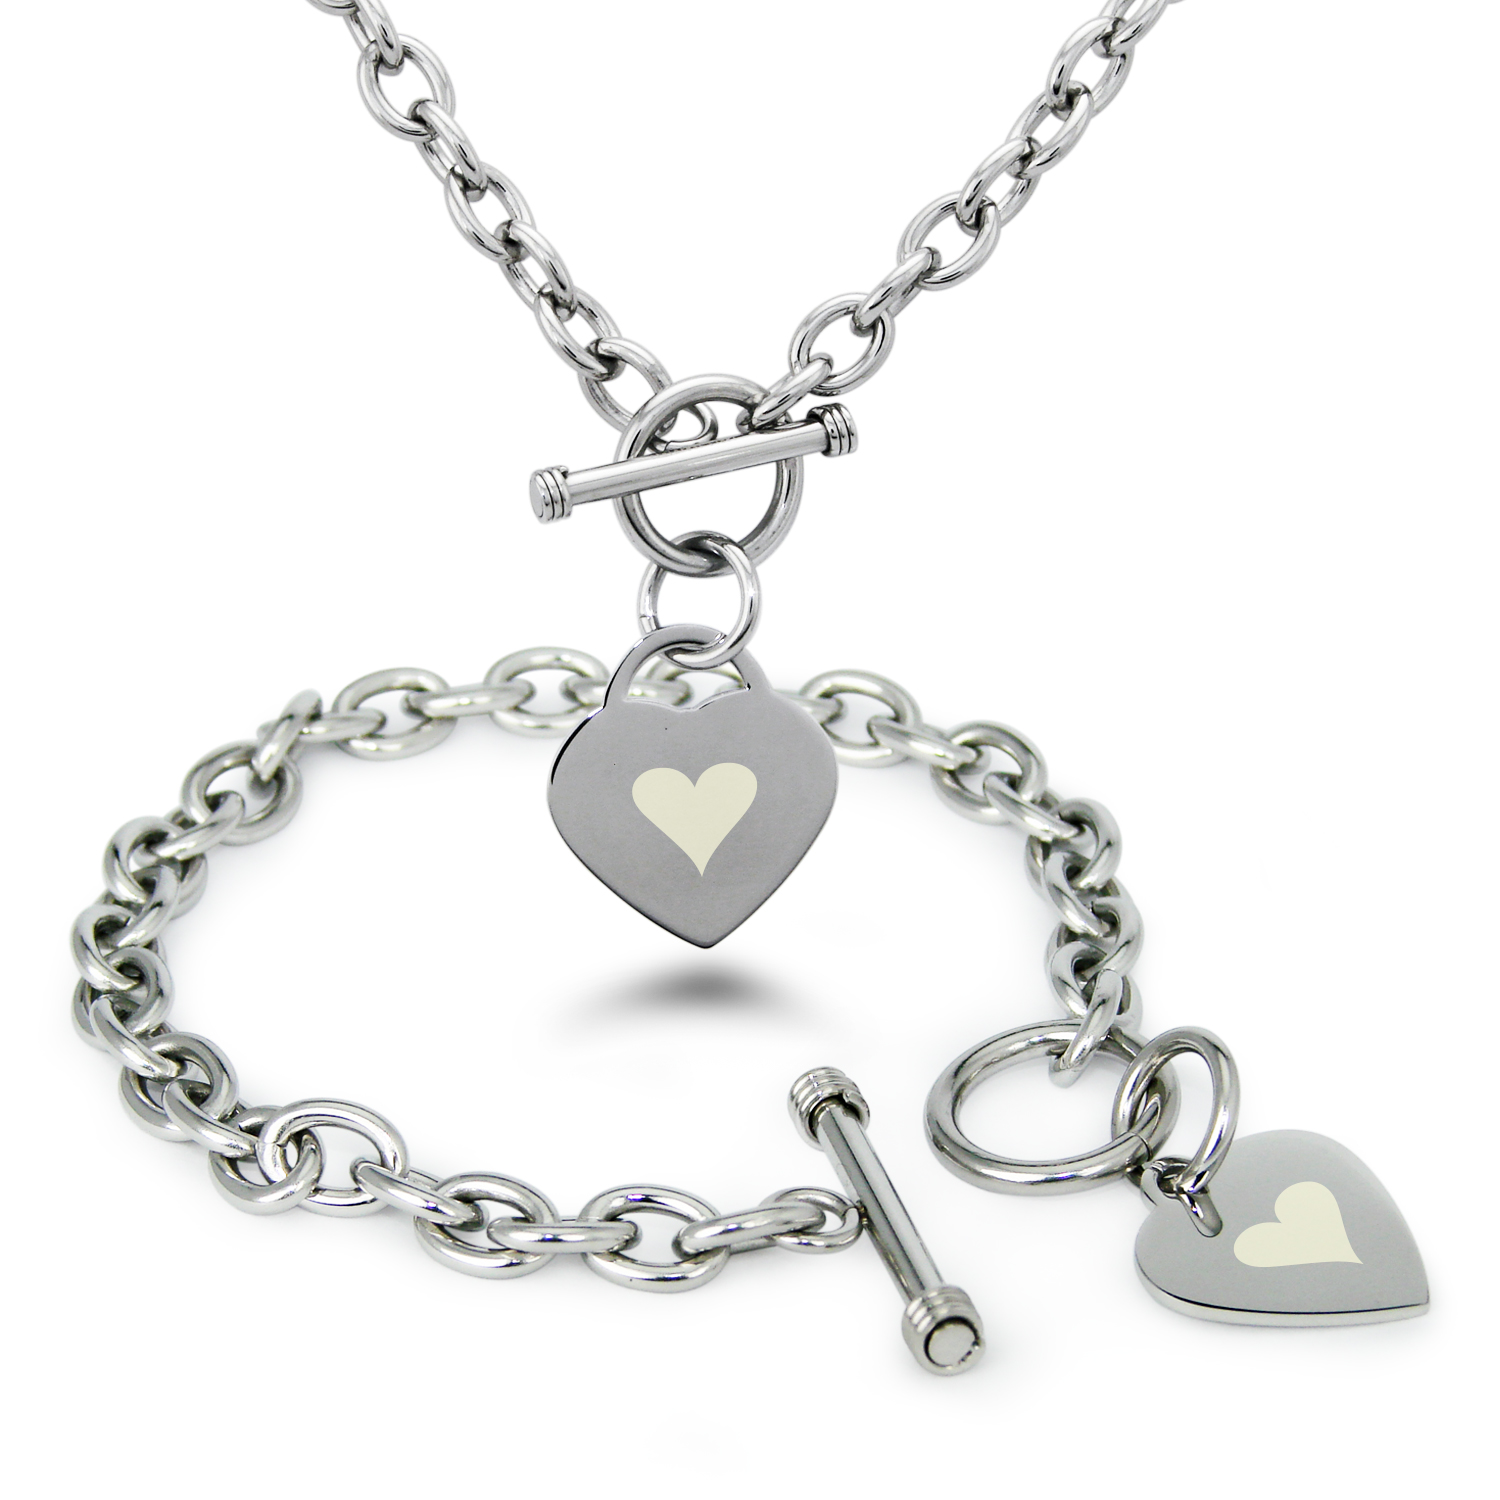 Stainless Steel Heart Symbol Heart Charm Toggle Bracelet & Necklace